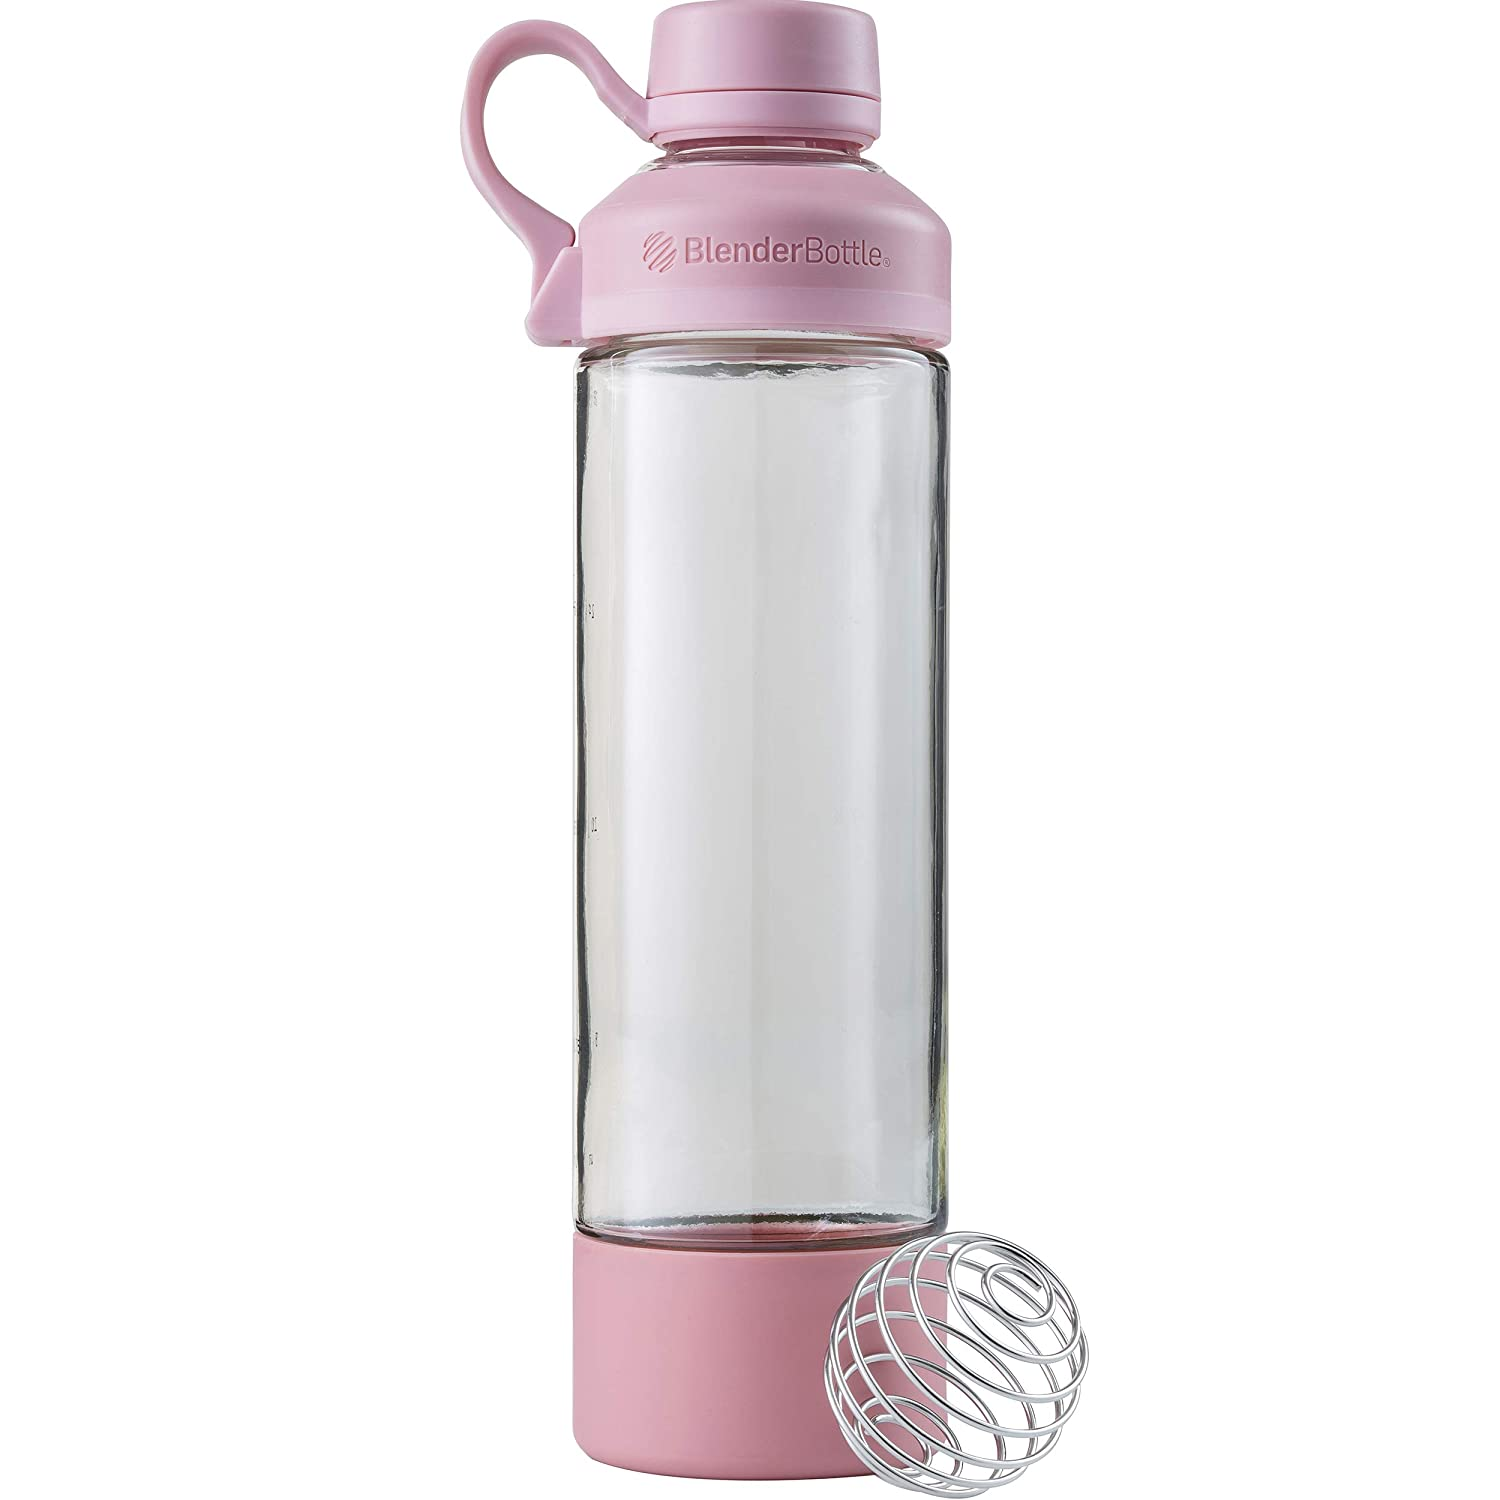 BlenderBottle Mantra Glass Shaker Bottle, 20-Ounce, Rose Pink